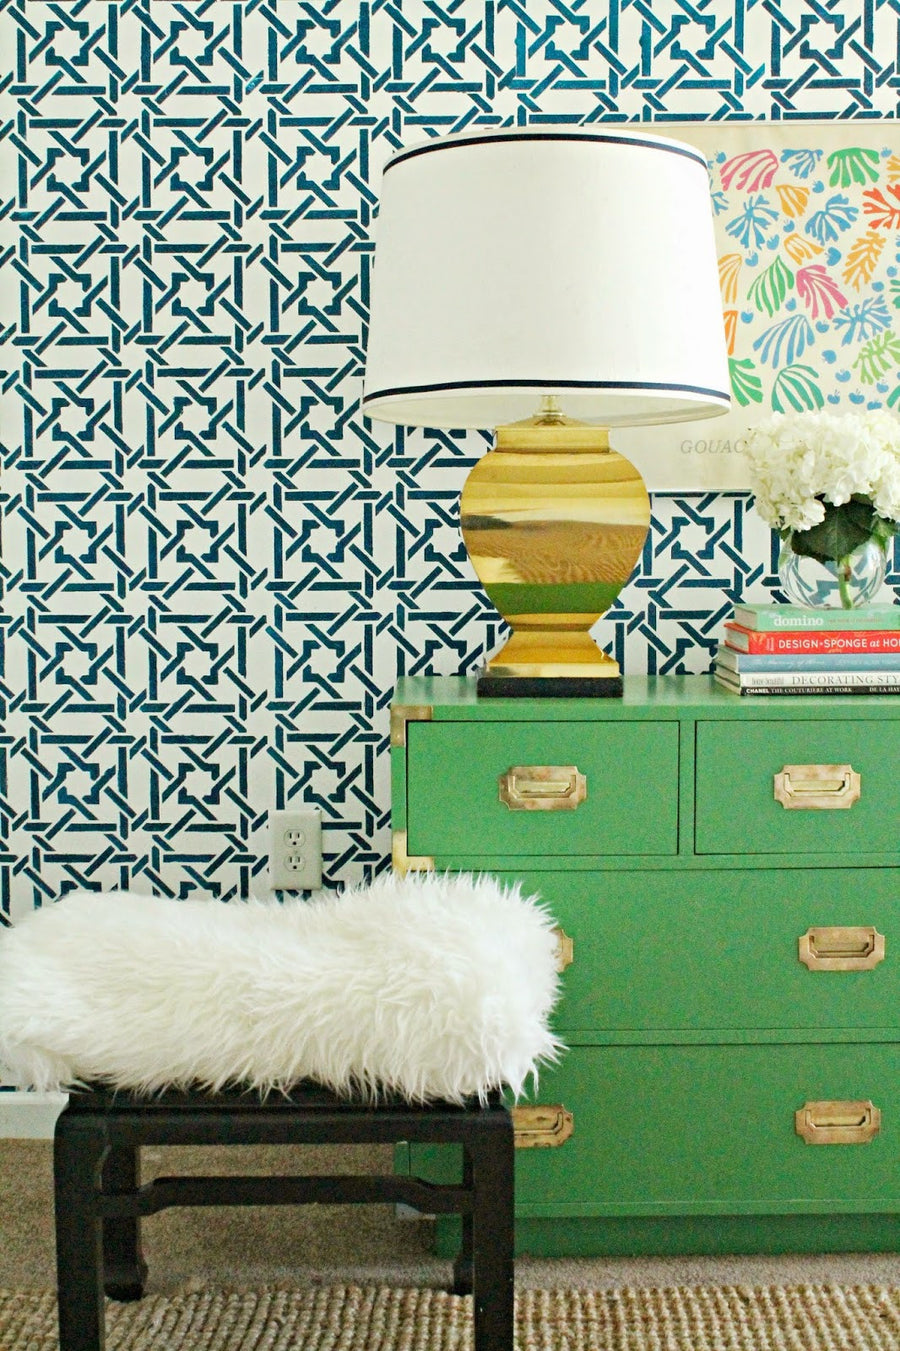 Decorate your home with Moroccan stencils camel bone weave geometric and exotic pattern - Royal Design Studio